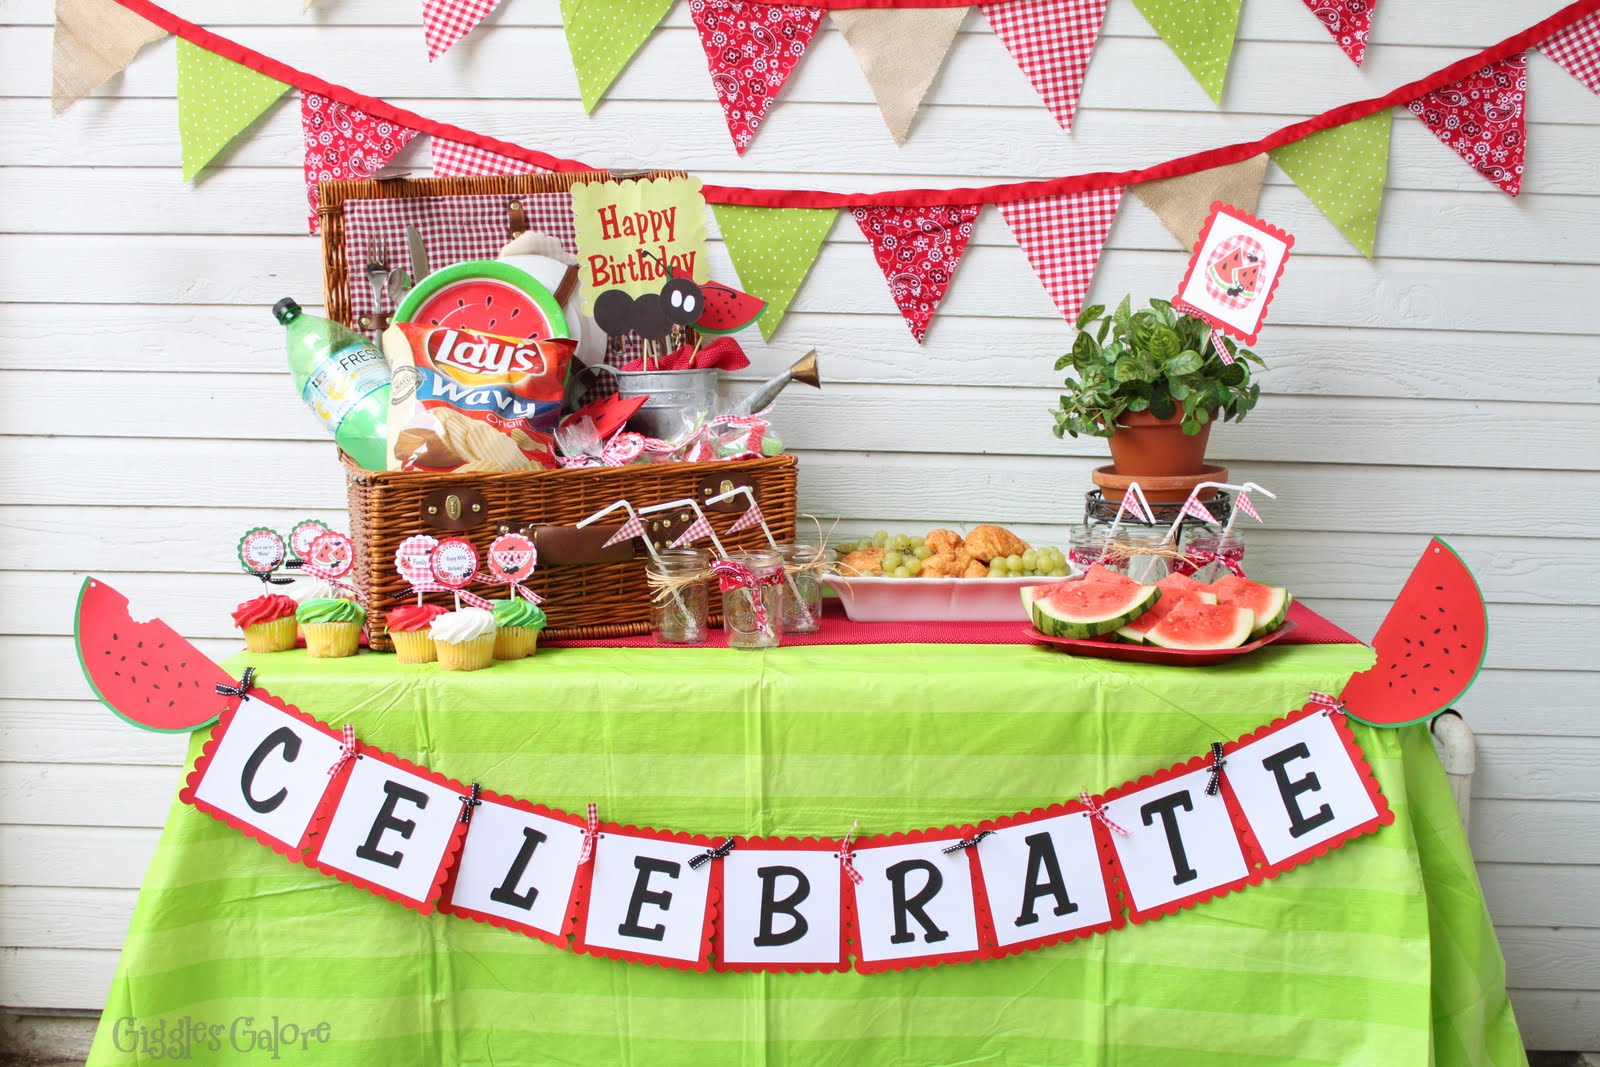 Watermelon picnic party for 80th birthday party decoration